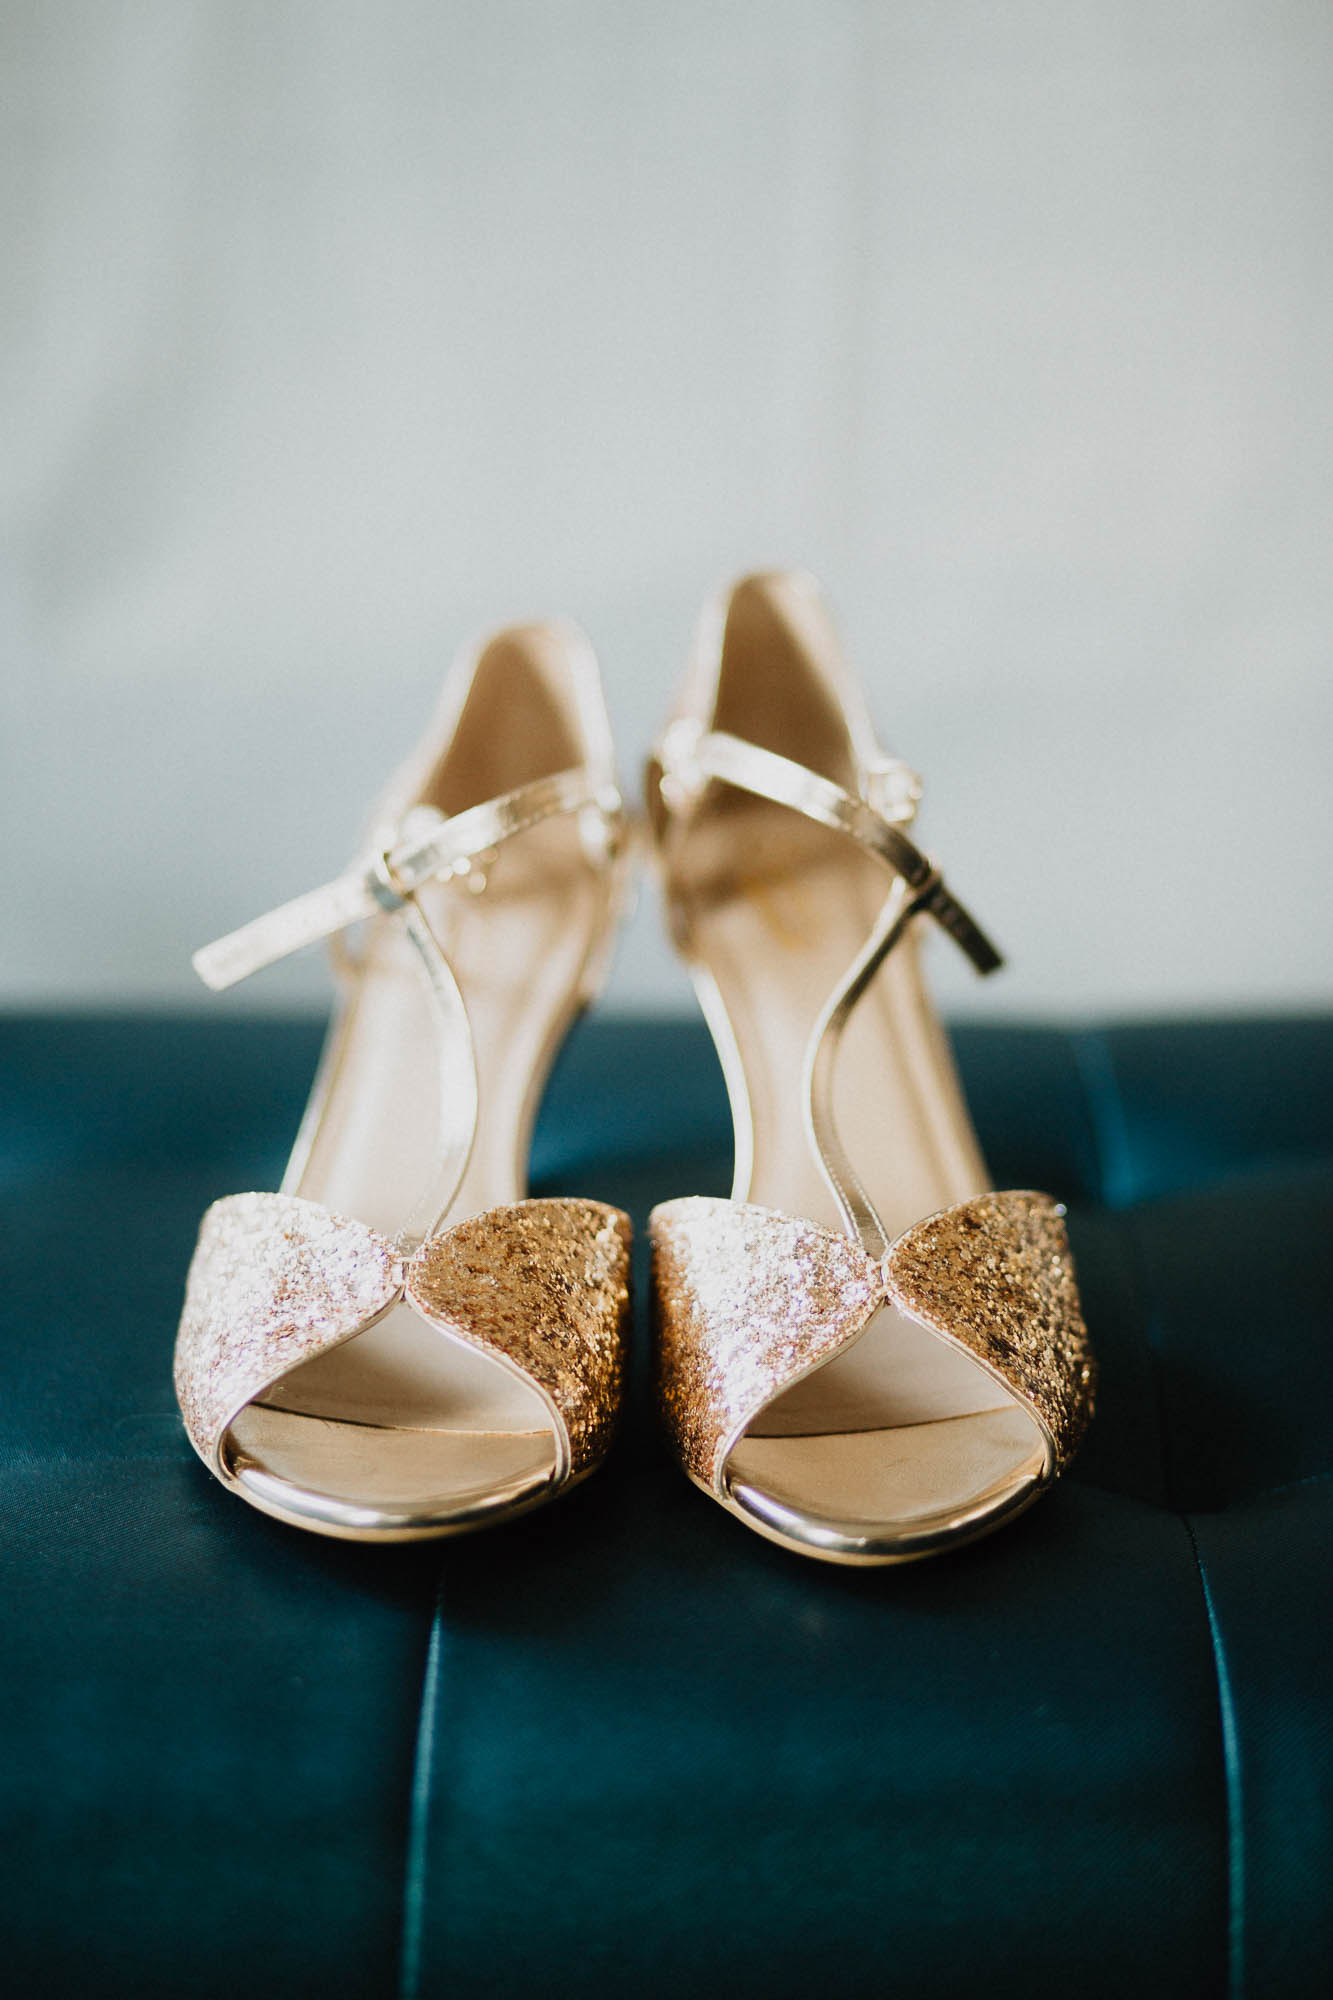 Bride's BHLDN Shoes During Prep Photo